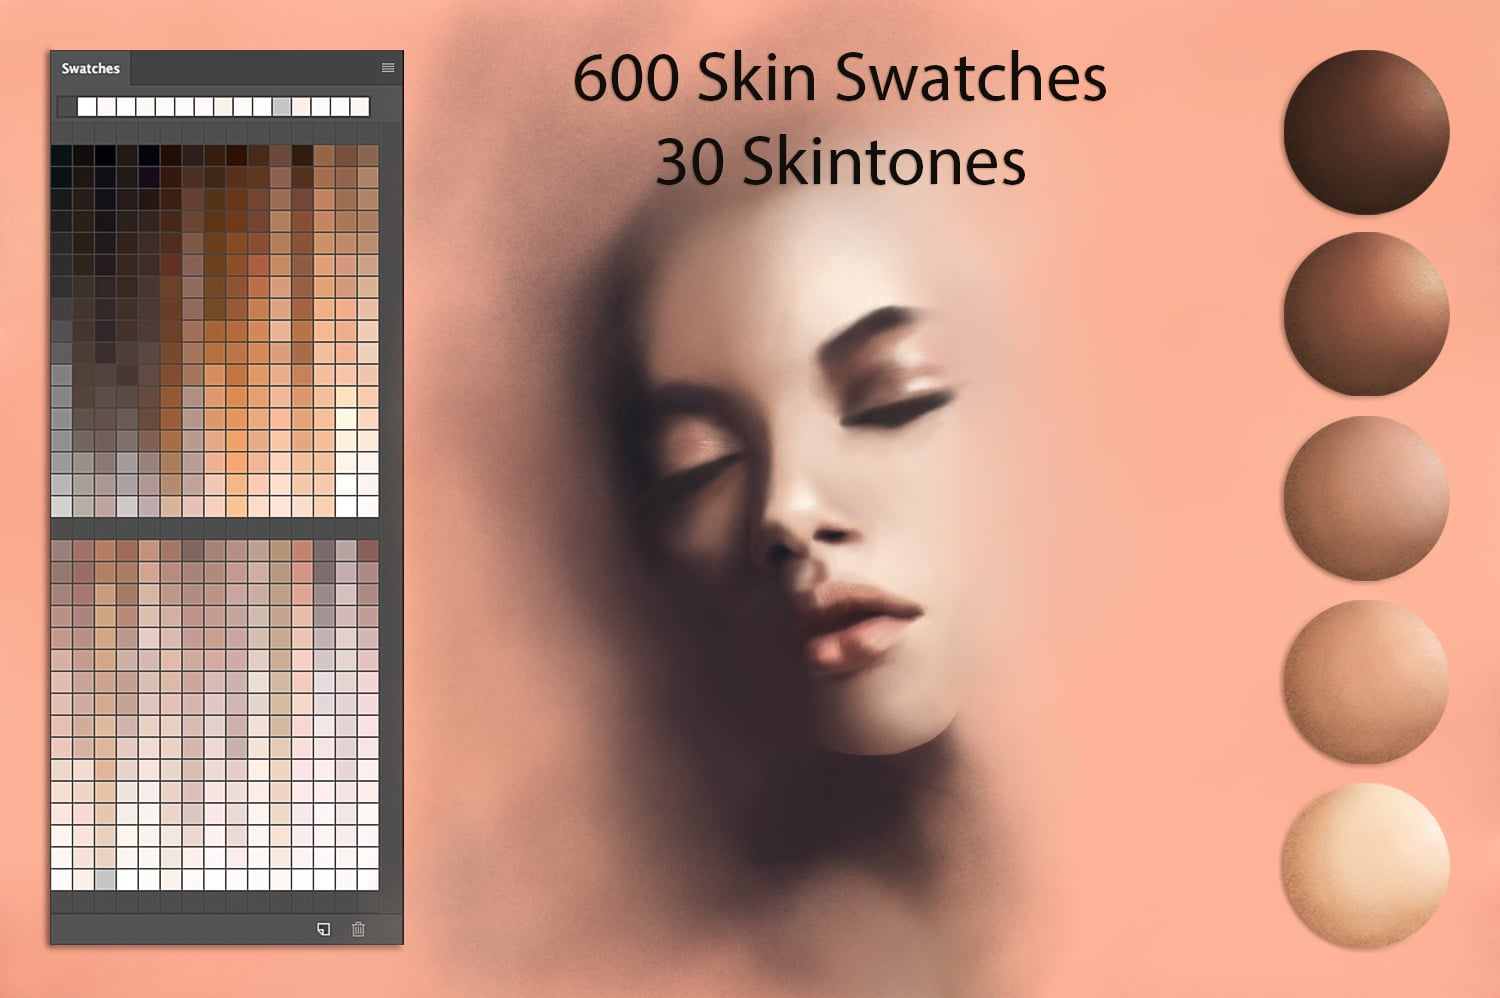 Digital Painting Assets - almost 3000 Elements - Skin